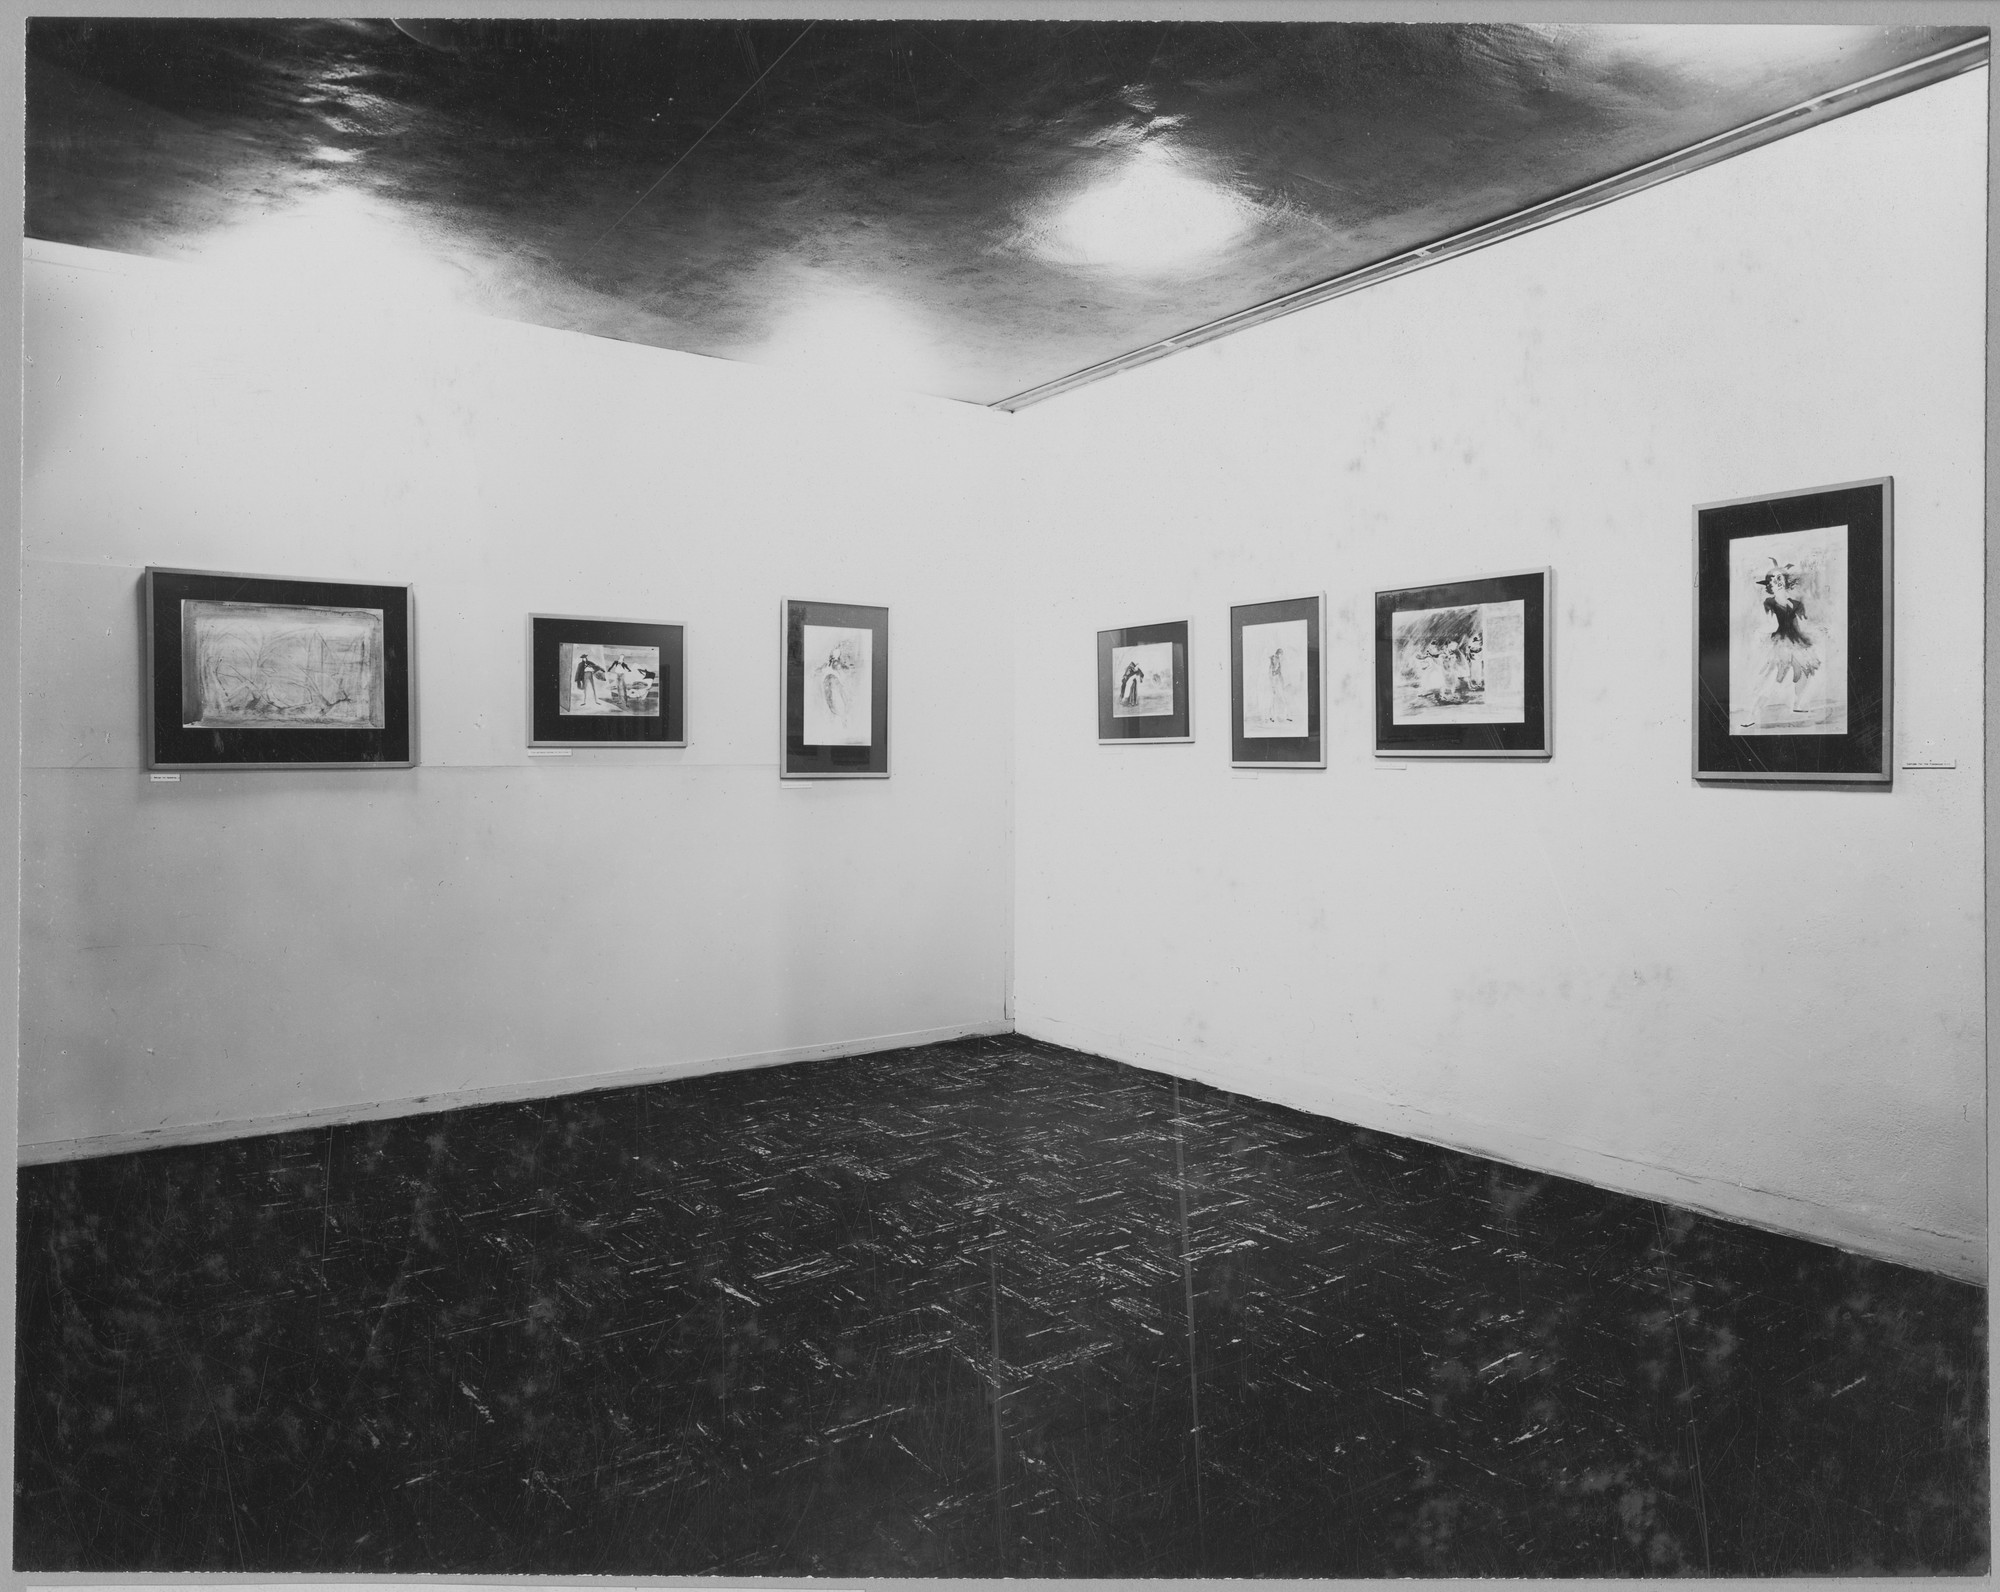 "Installation view of the exhibition, ""Ballet Drawings by Franklin C. Watkins for 'Transcendence'; Model by Eugene Berman for 'The Island God.'"" June 18, 1946–August 25, 1946. Photographic Archive. The Museum of Modern Art Archives, New York. IN323.1. Photograph by Soichi Sunami."